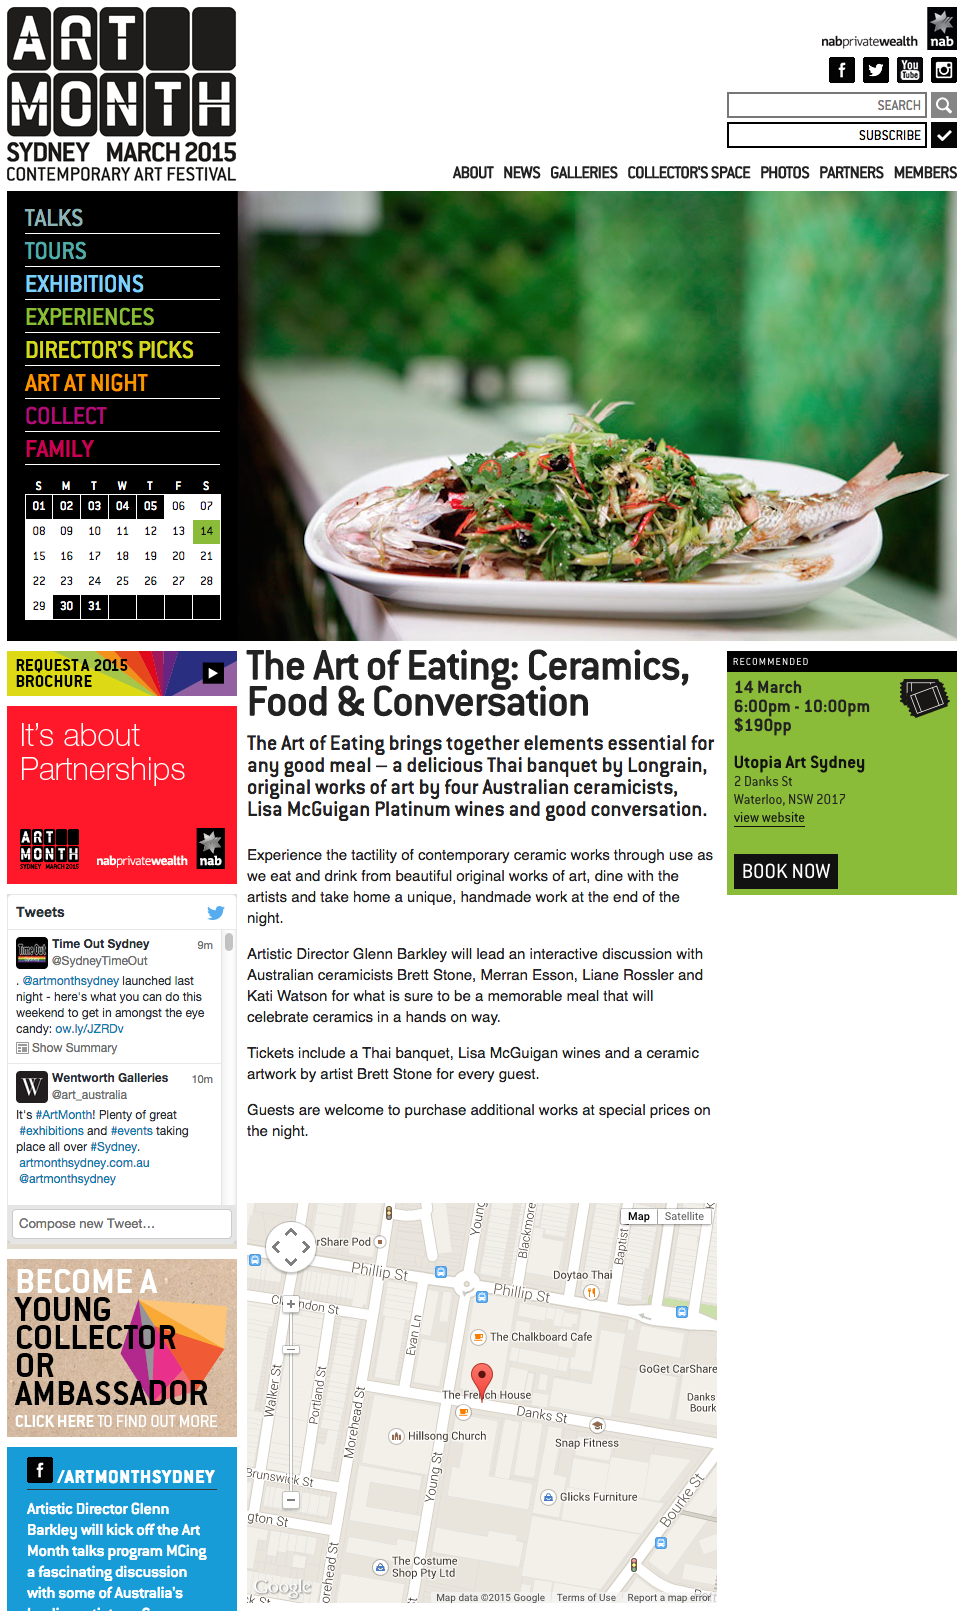 Art Month Sydney 2015   The Art of Eating  Ceramics  Food   Conversation.png